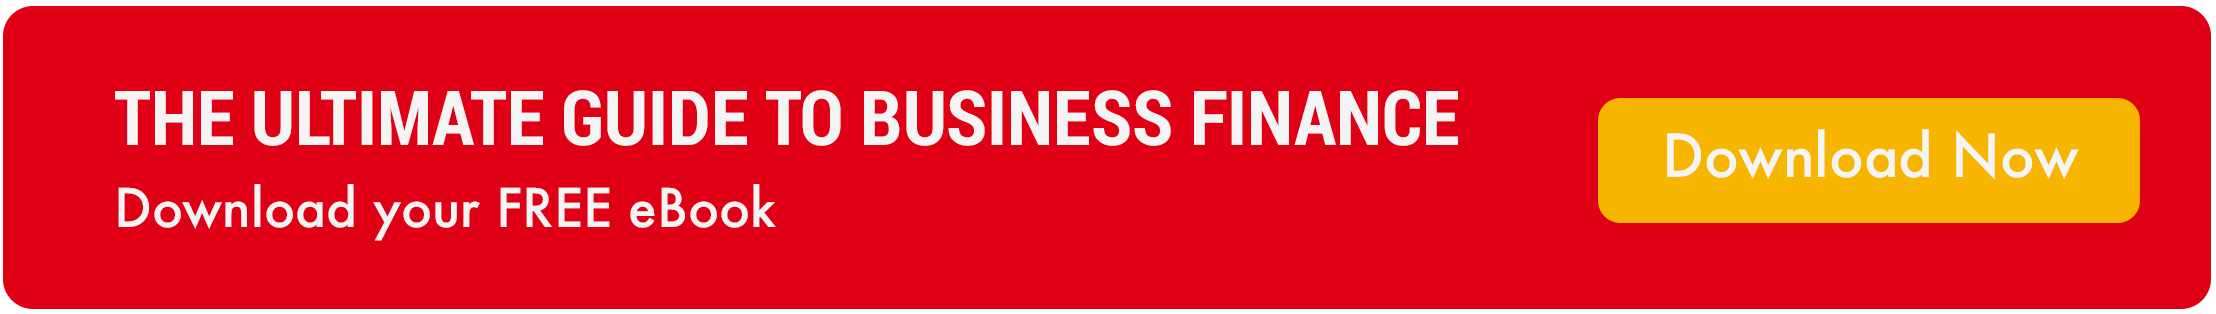 The Ultimate Guide To Business Finance